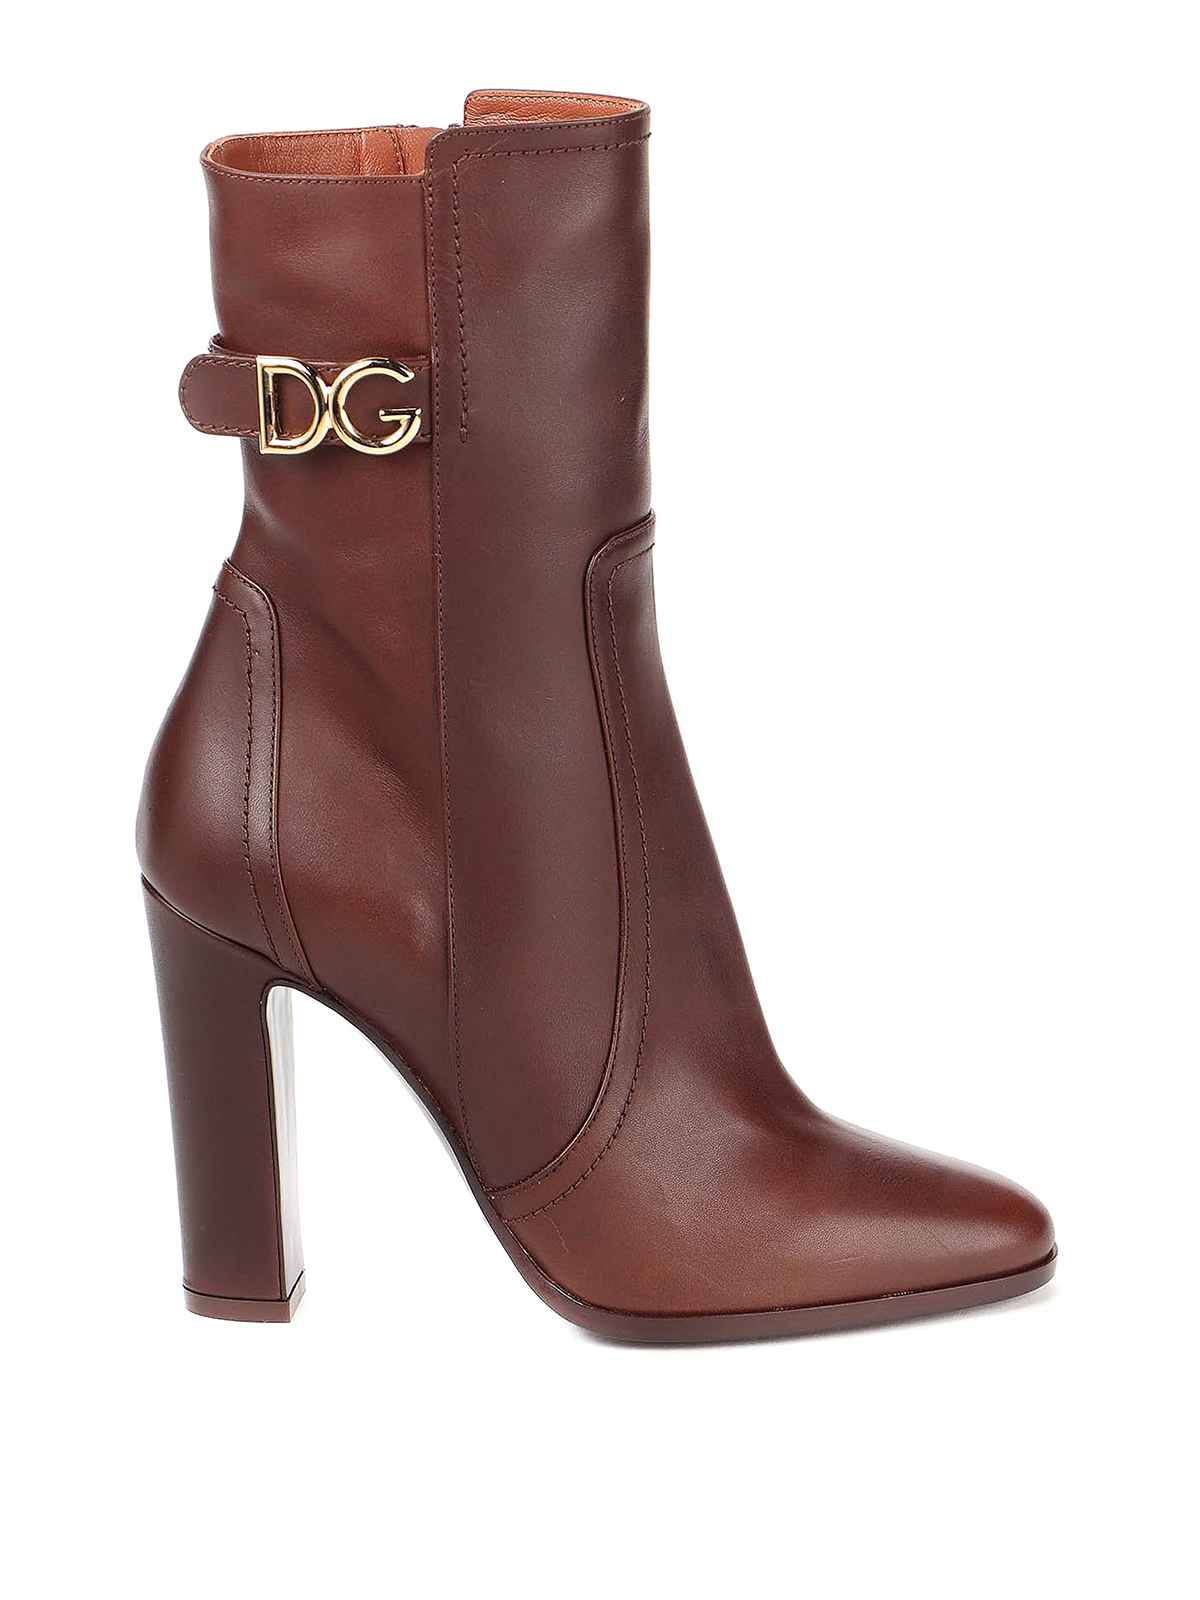 Dolce & Gabbana Leathers DG LOGO ANKLE BOOTS